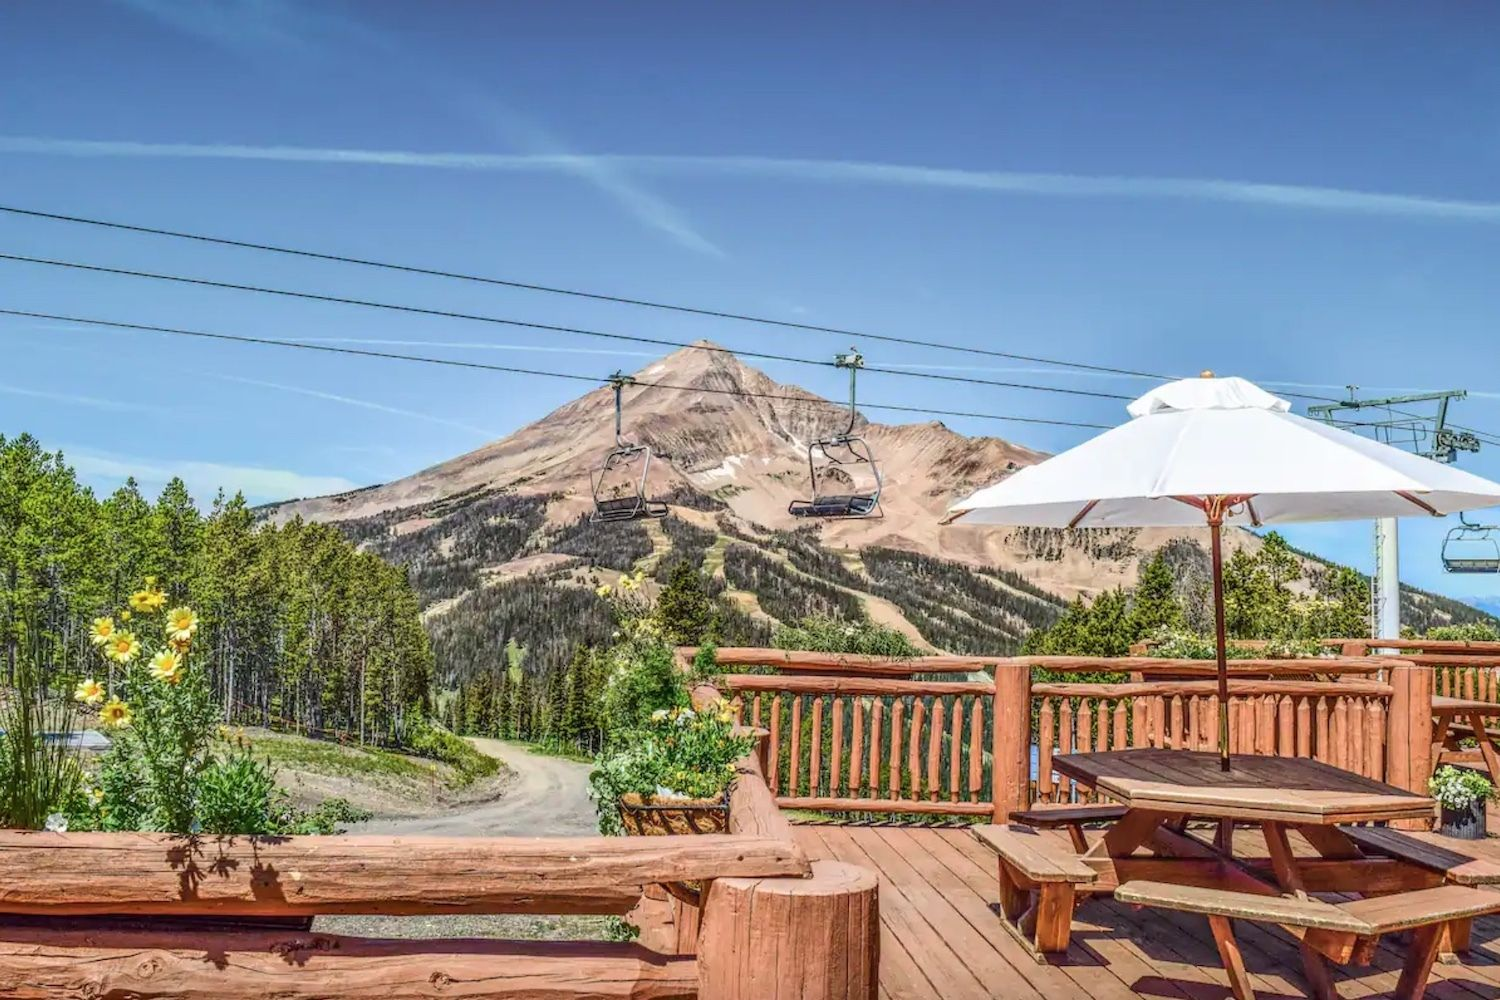 Airbnb Andesite Mountain in Big Sky, Montana deck view, airbnb montana mountain stay